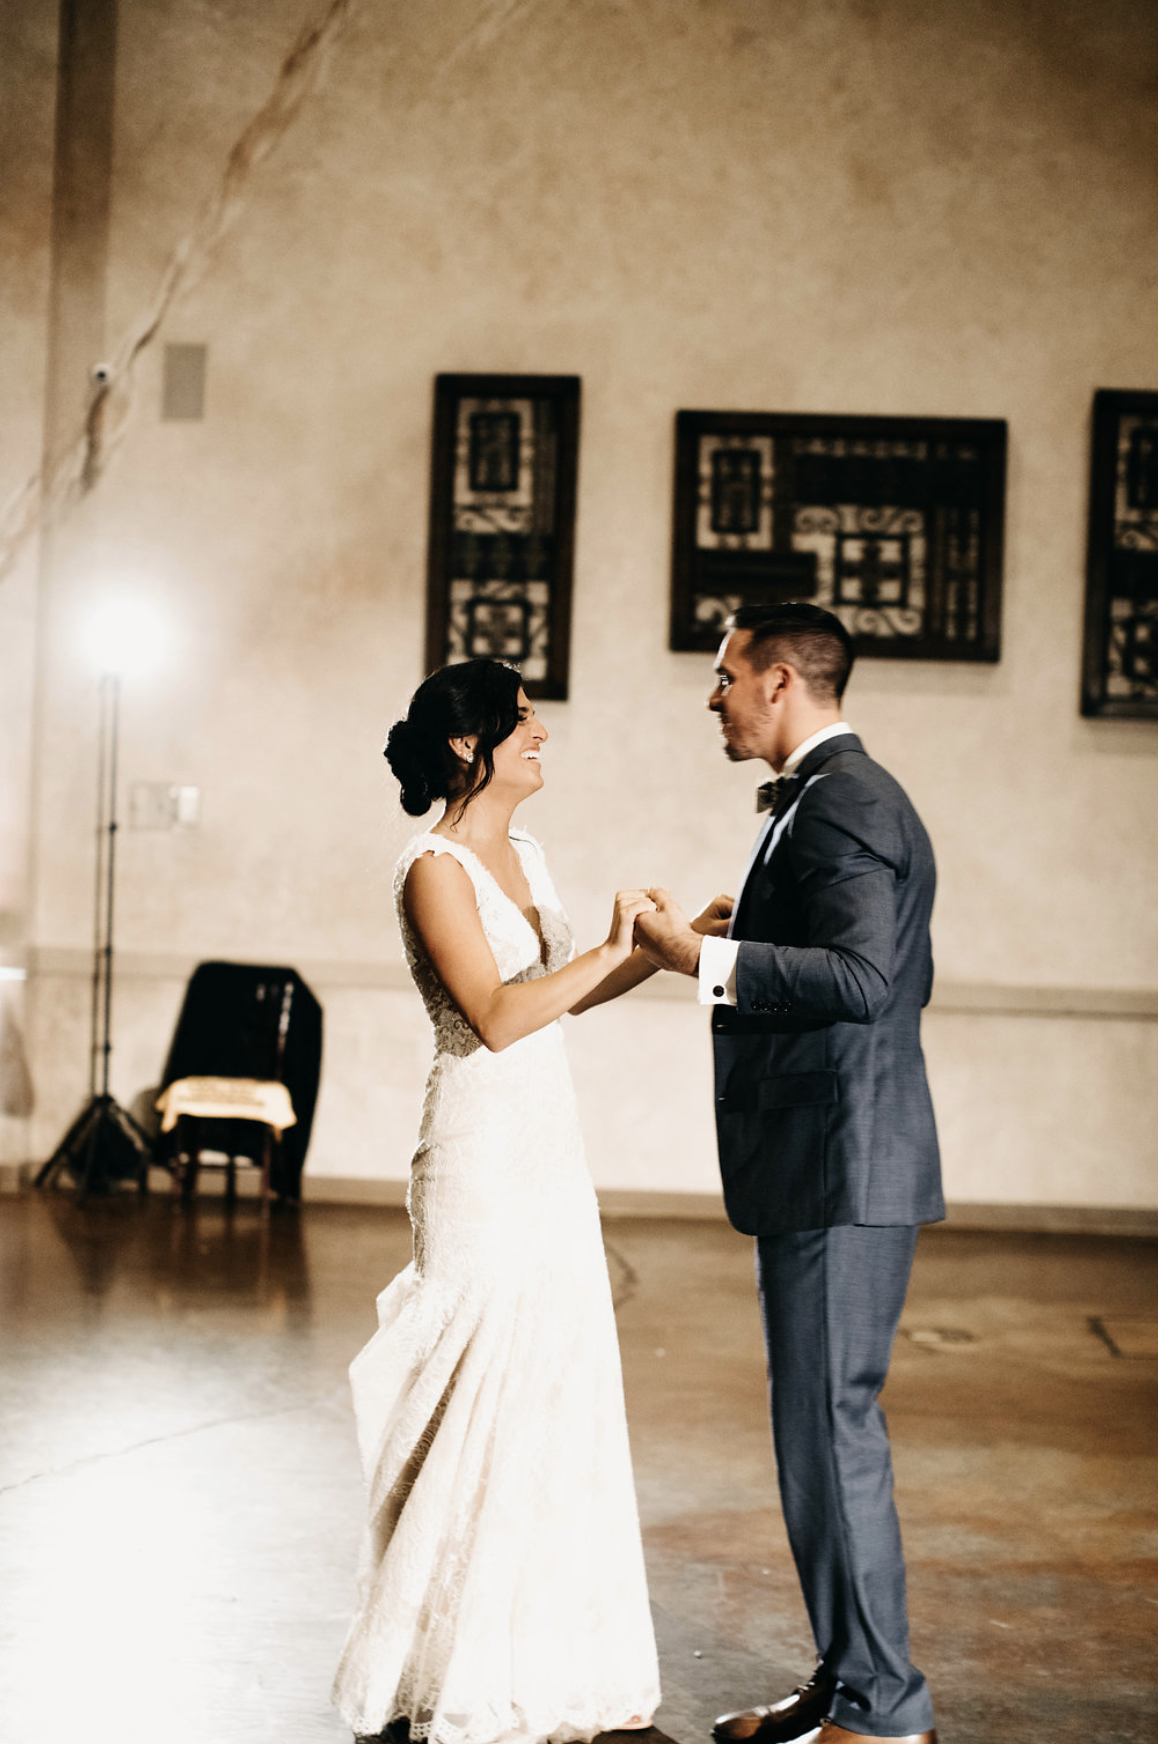 Valerie-and-TJ-McConnell-Wedding-Coordination-by-Cassandra-Clair-Event-Prep-Pittsburgh-Wedding-58.png